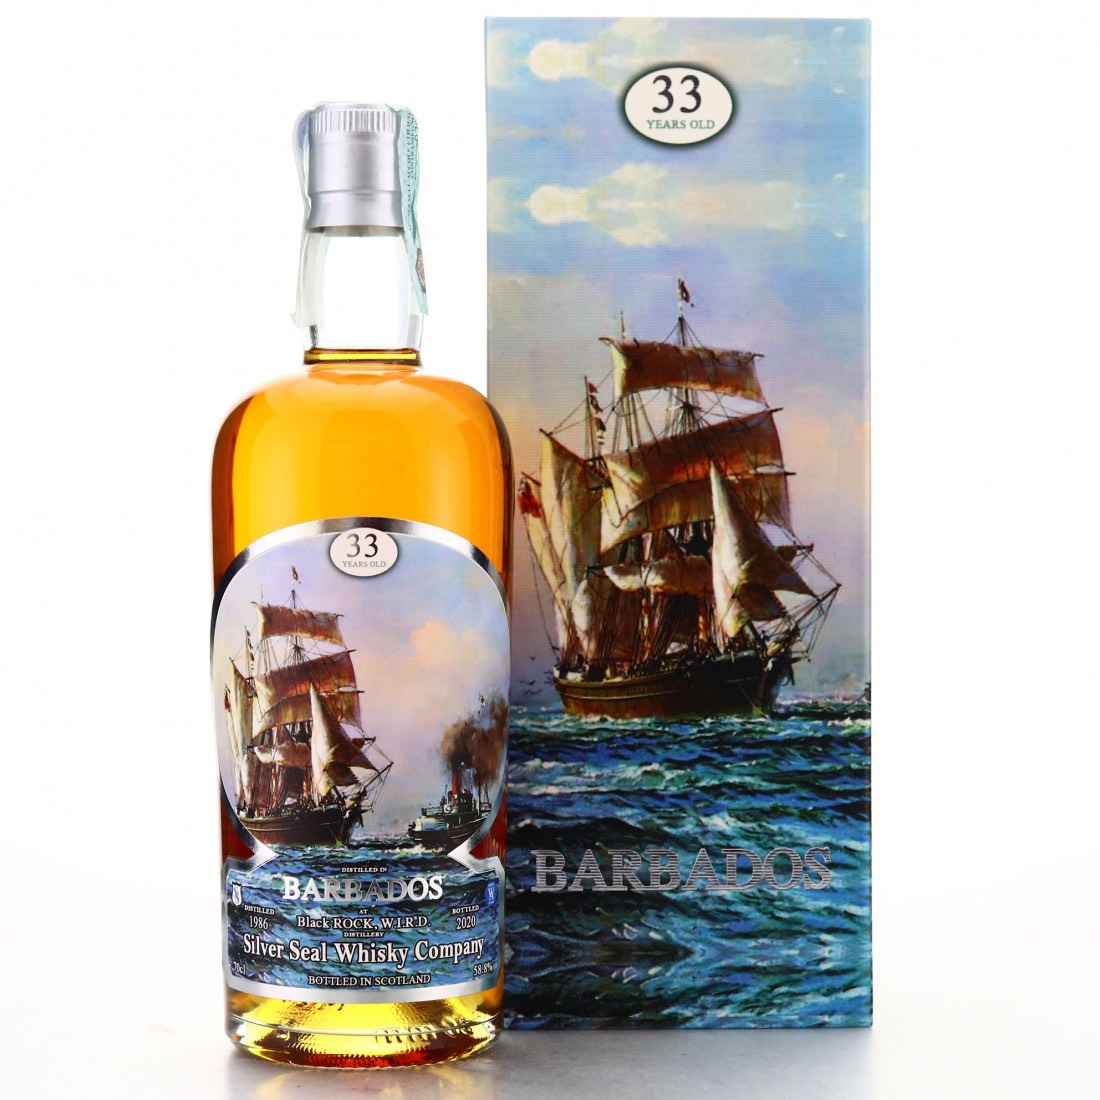 Bottle image of Barbados BRS